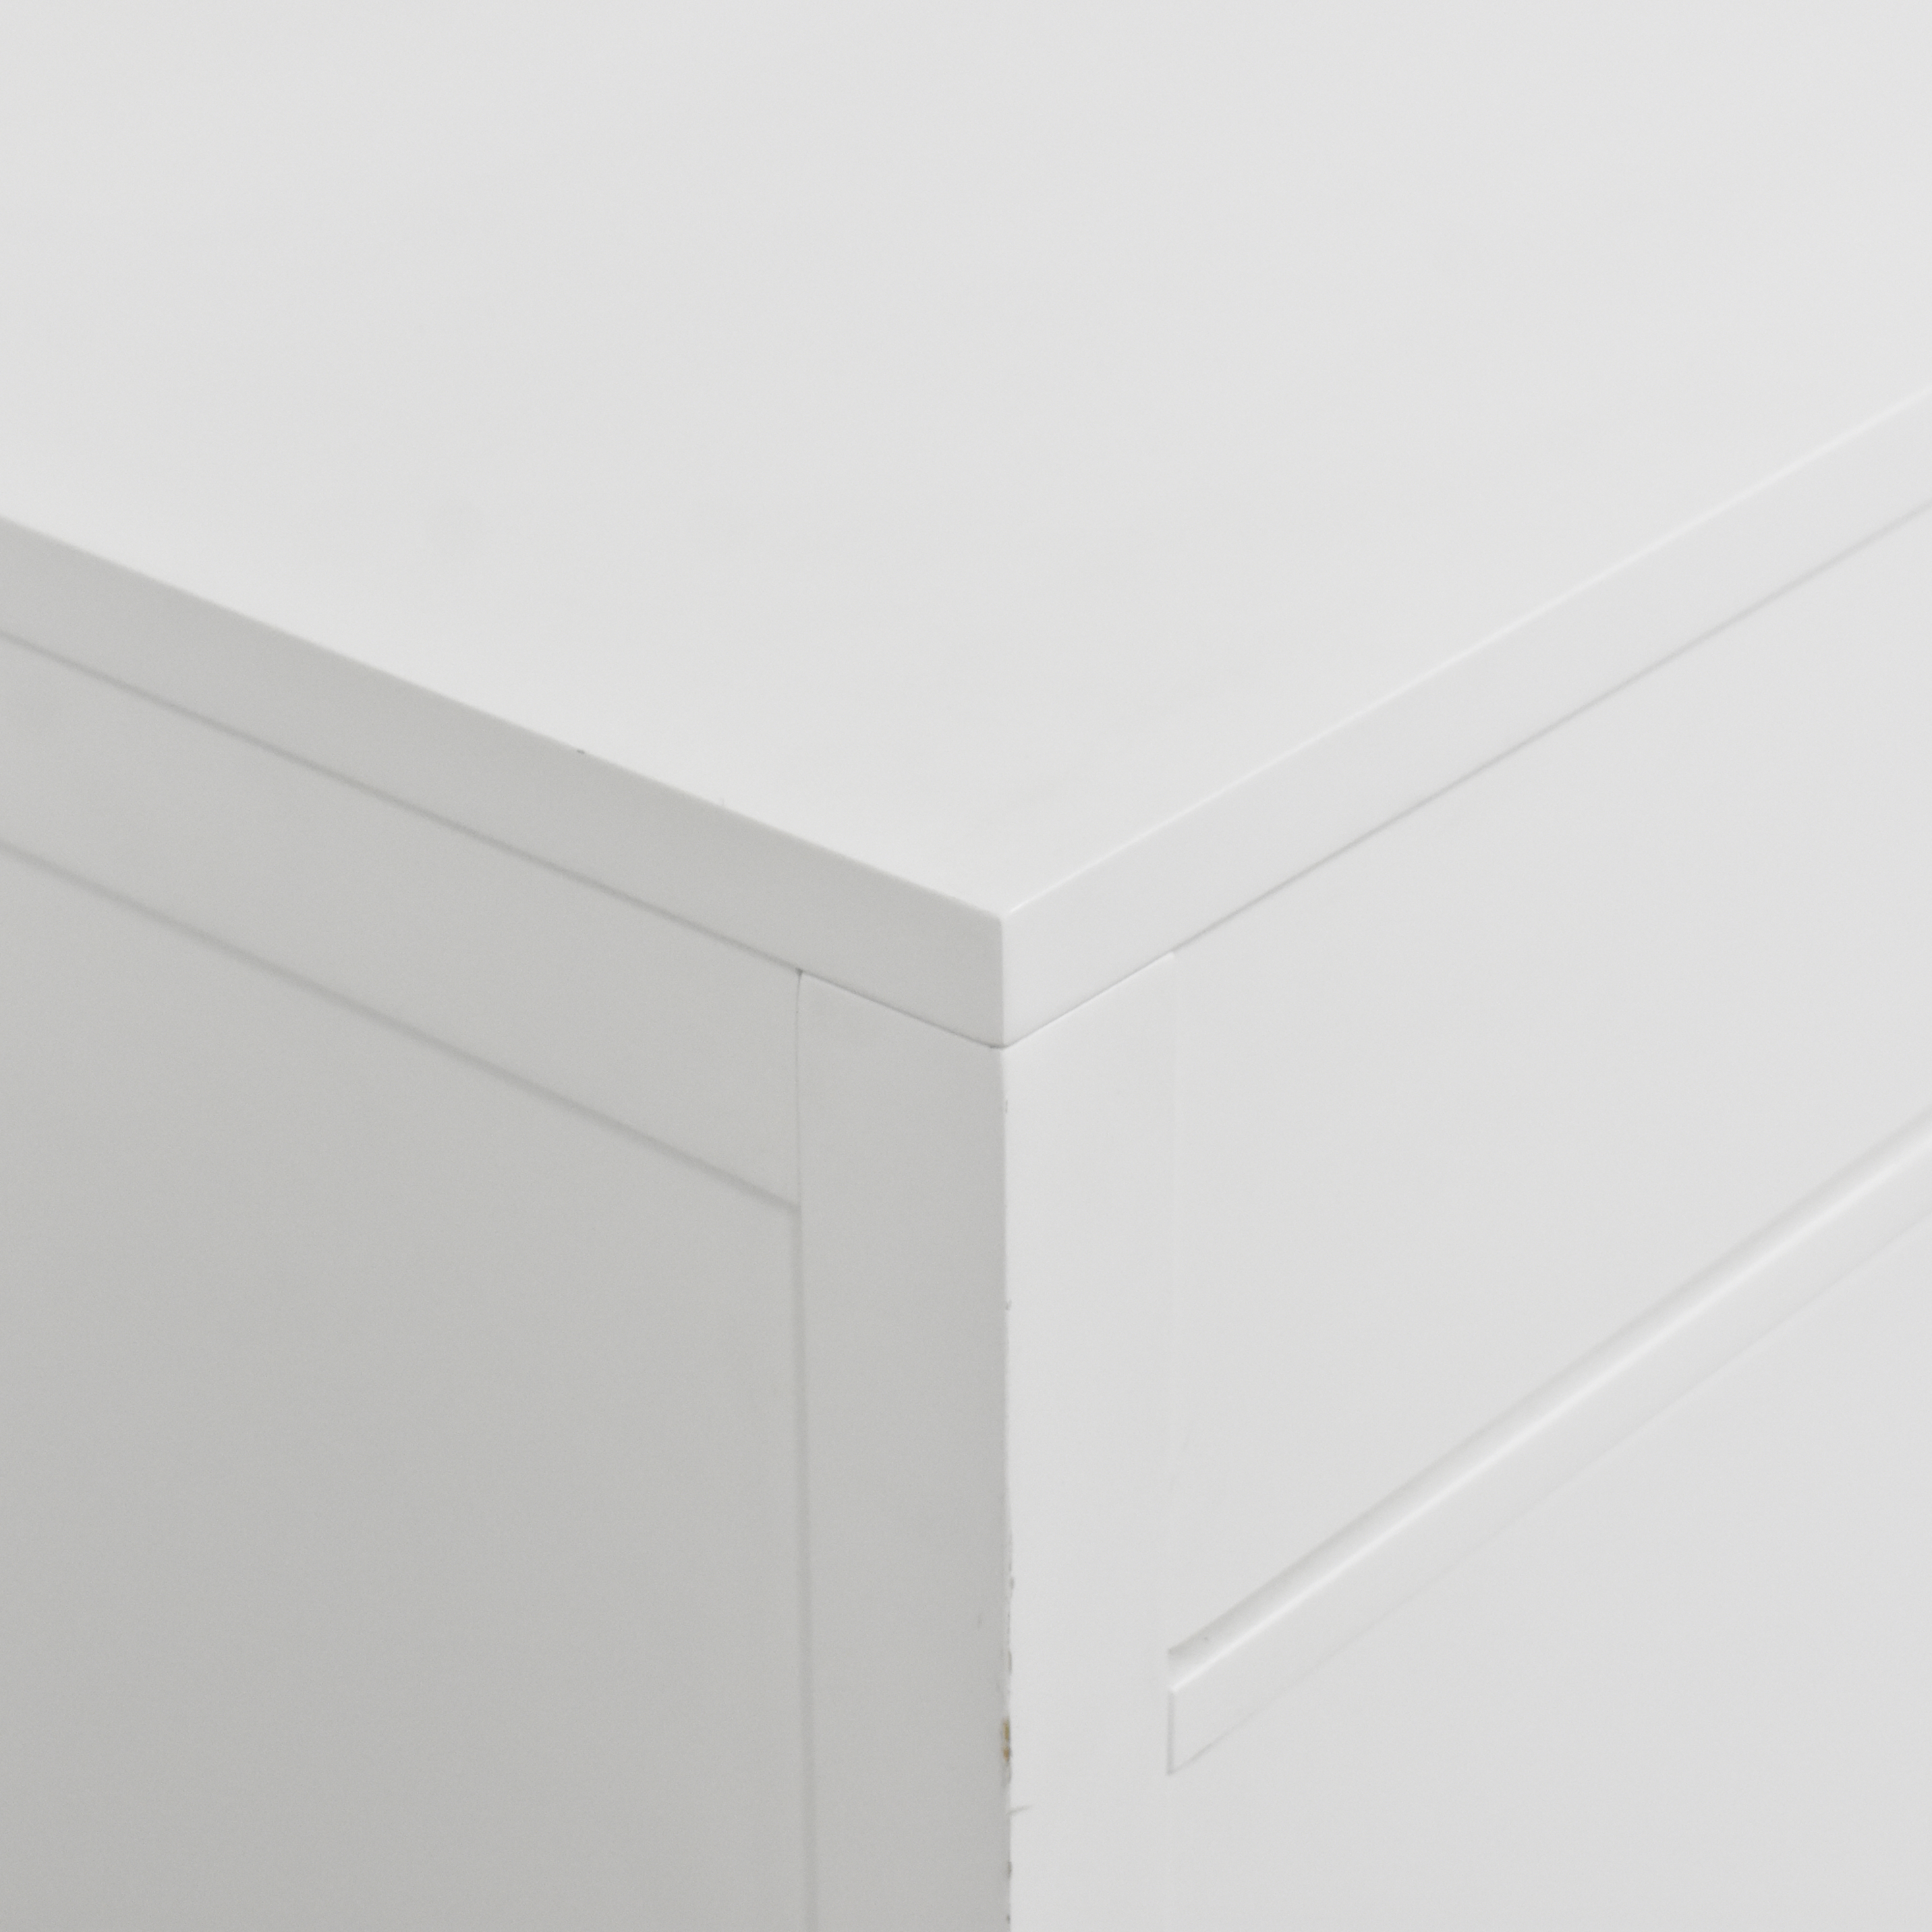 Crate & Barrel Crate & Barrel Arch Three Drawer Chest for sale